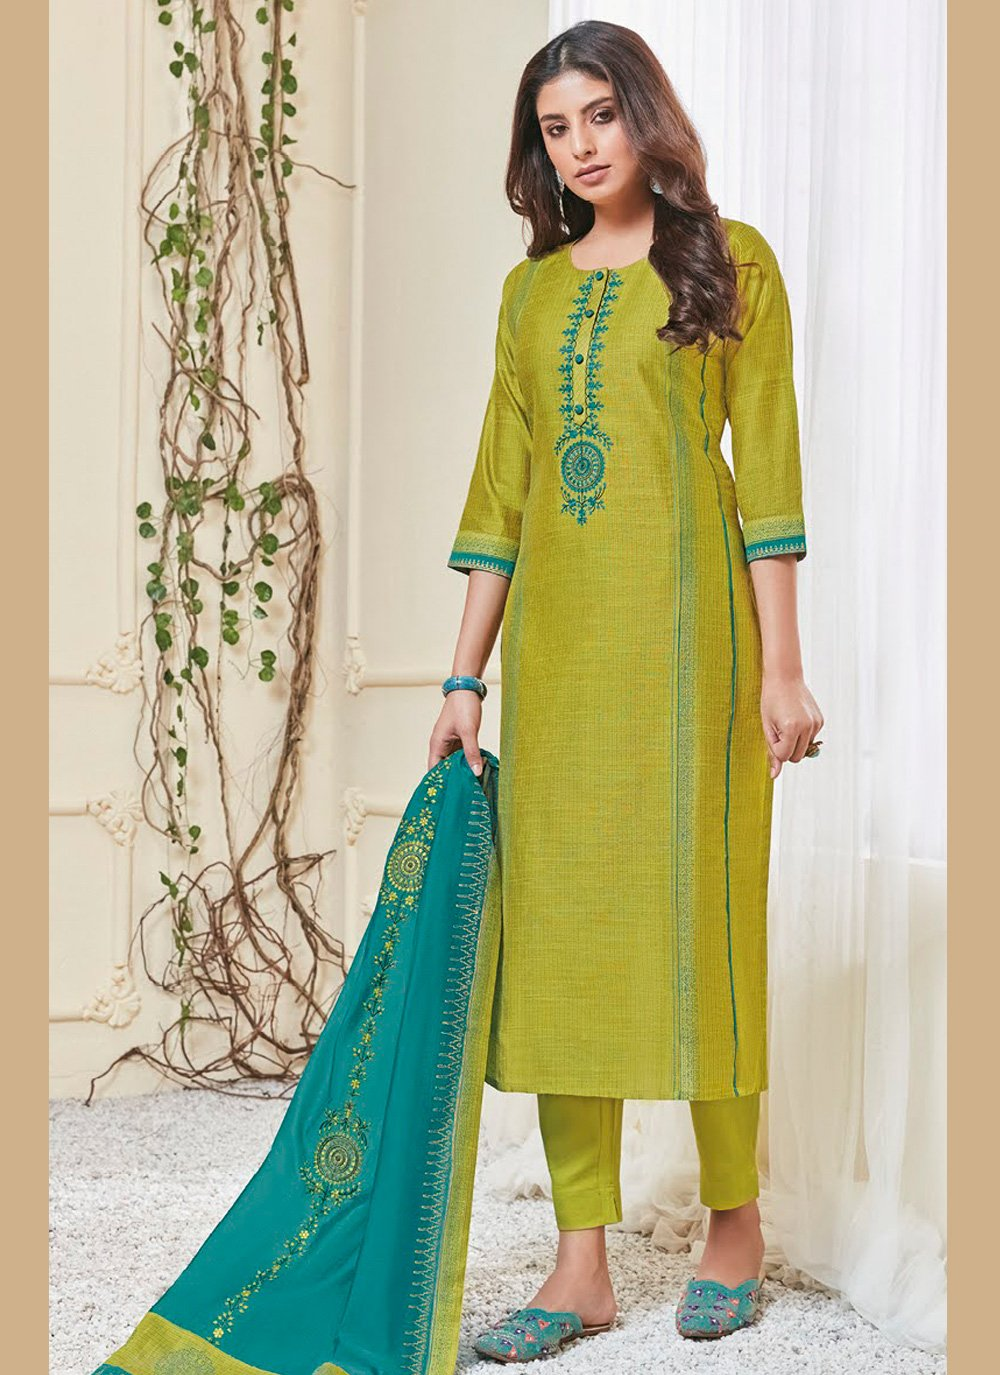 Embroidered Polly Cotton Pant Style Suit in Green